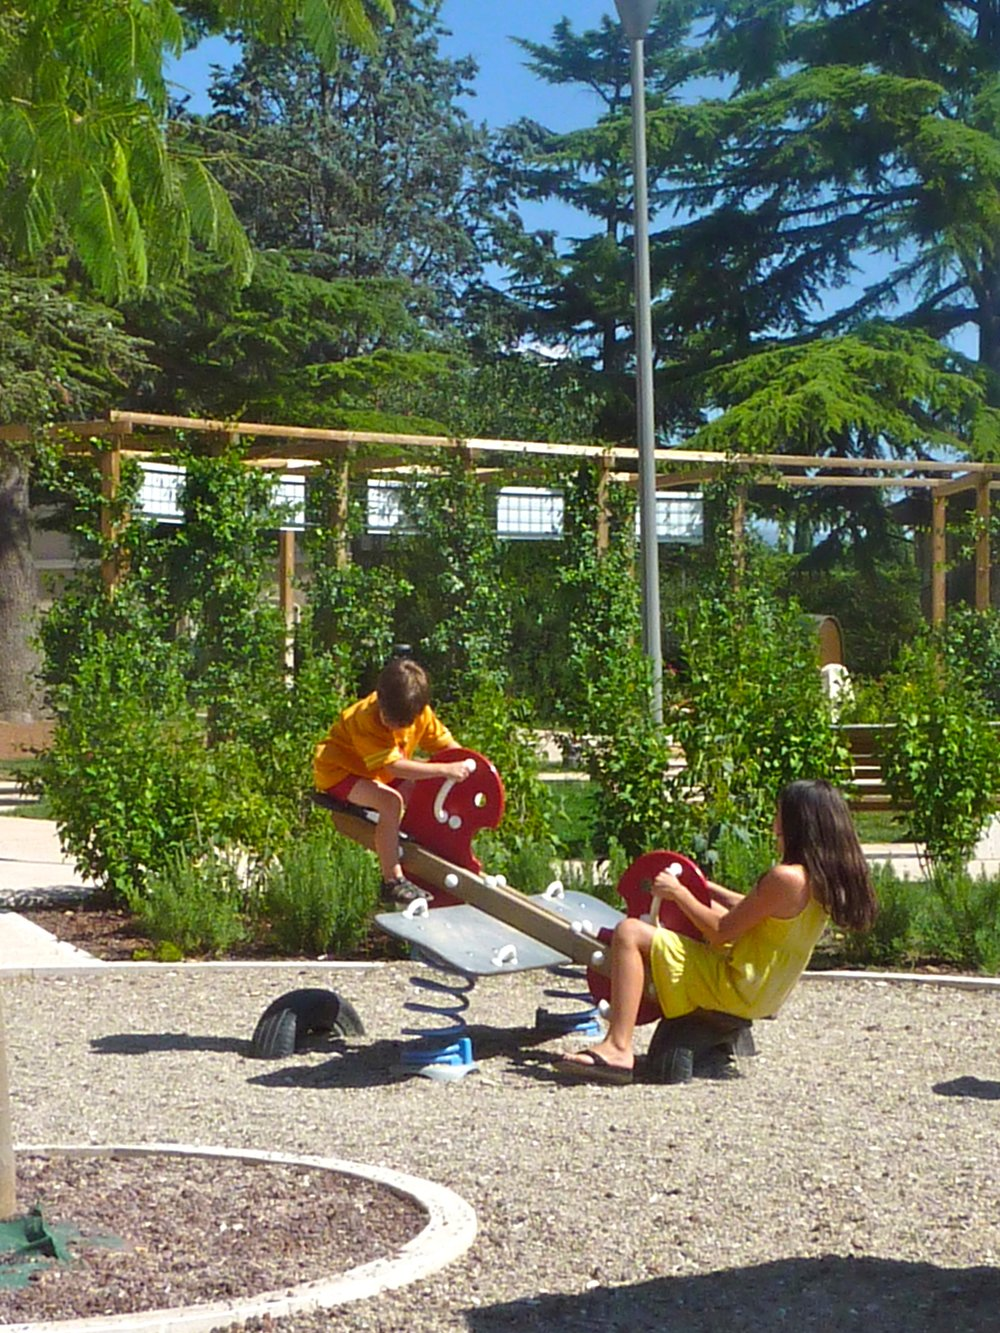 Kids playing at the giardino in Spello, Umbria, italy